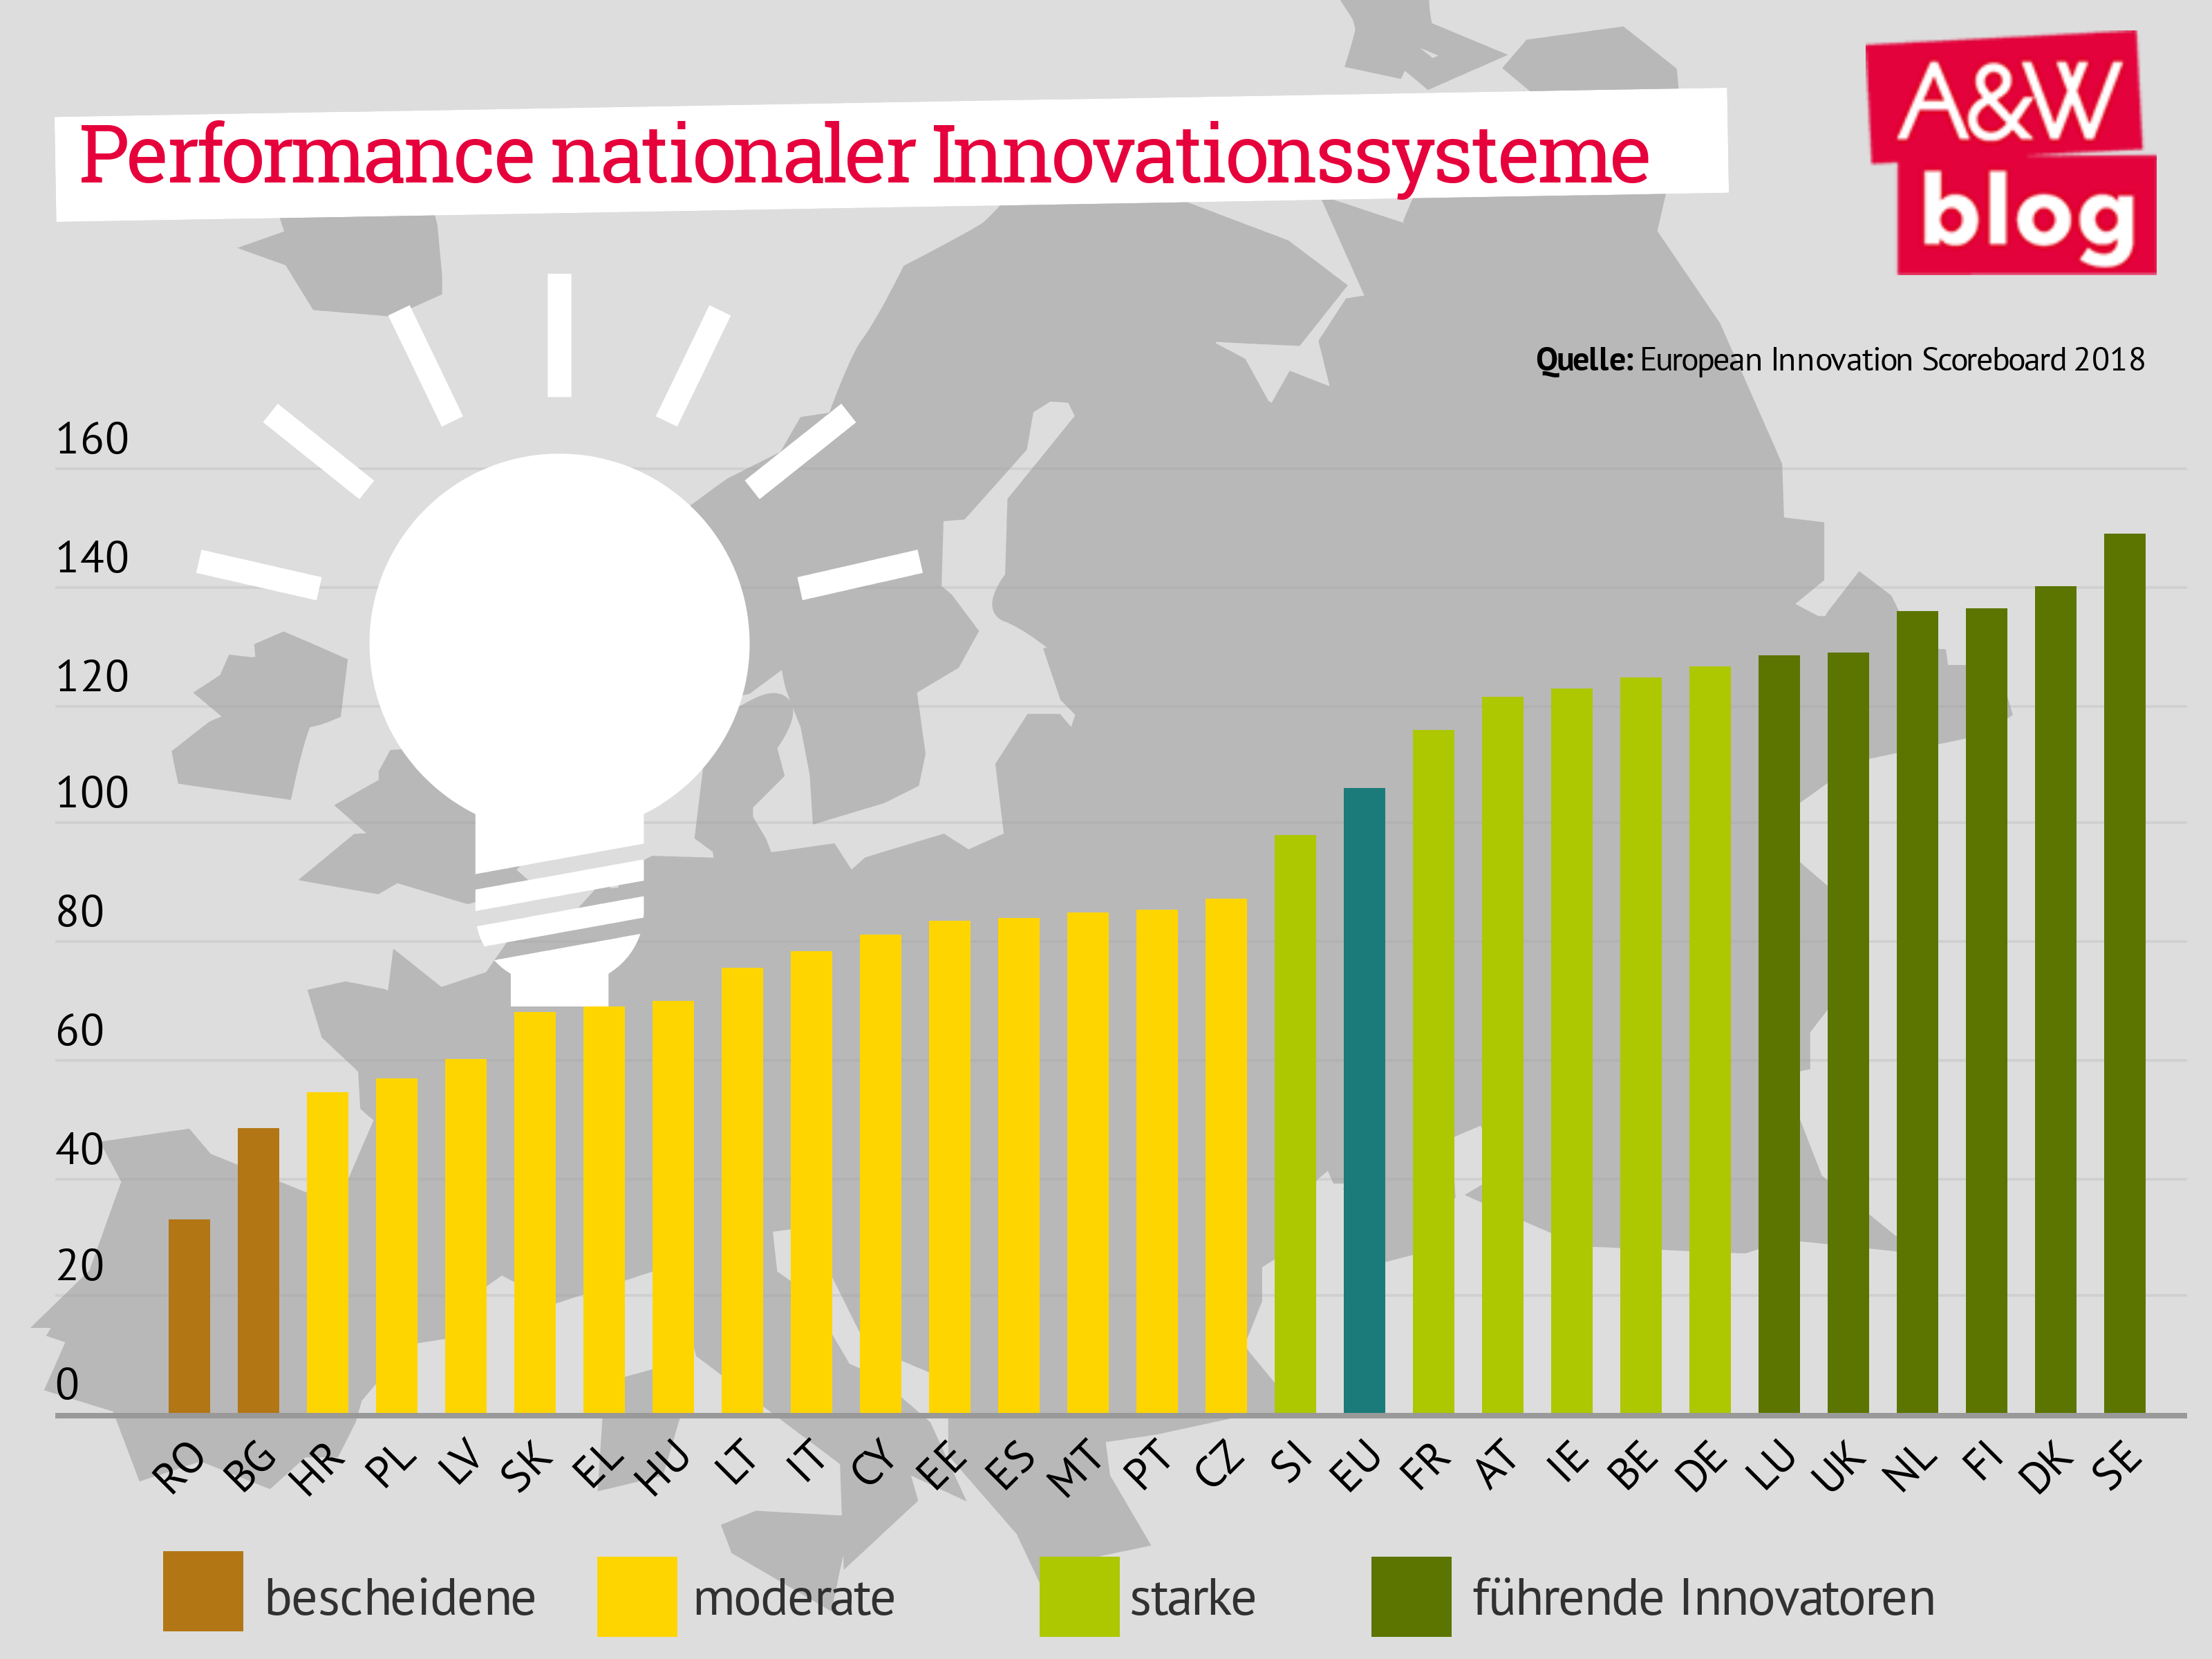 Performance inationaler Innovationssysteme